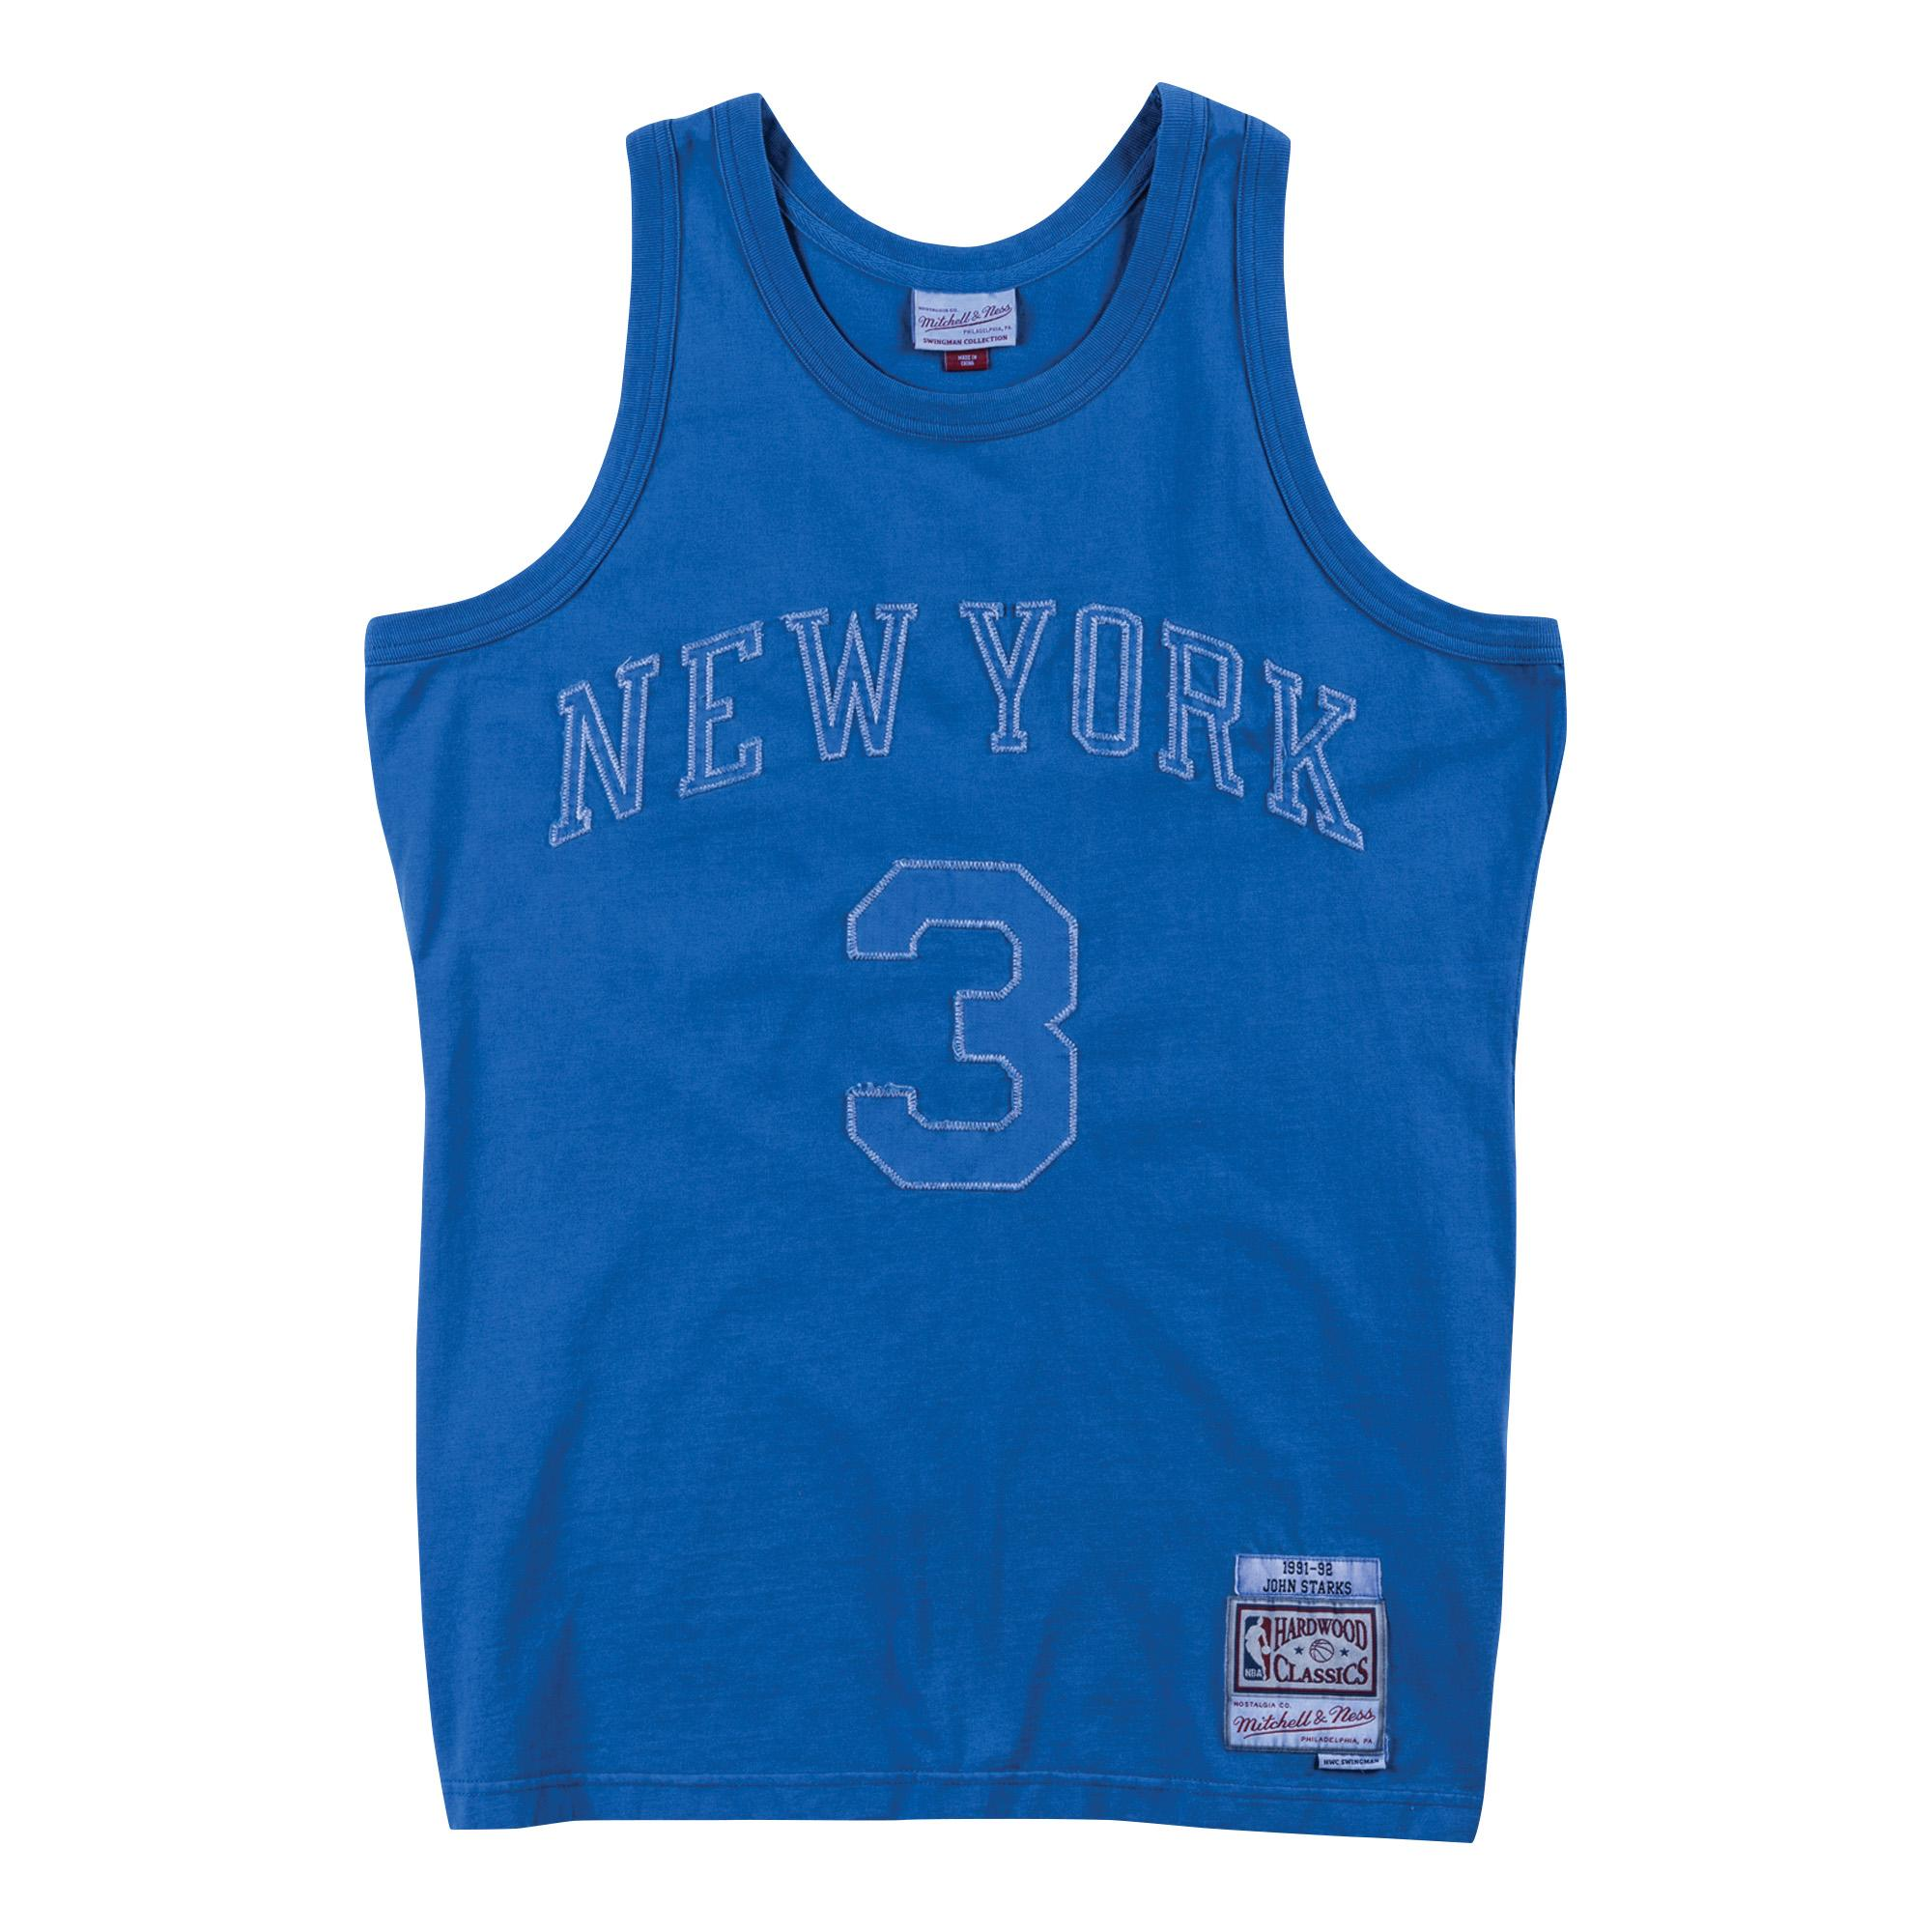 423bb31a7 Washed Out Swingman Jersey John Starks New York Knicks